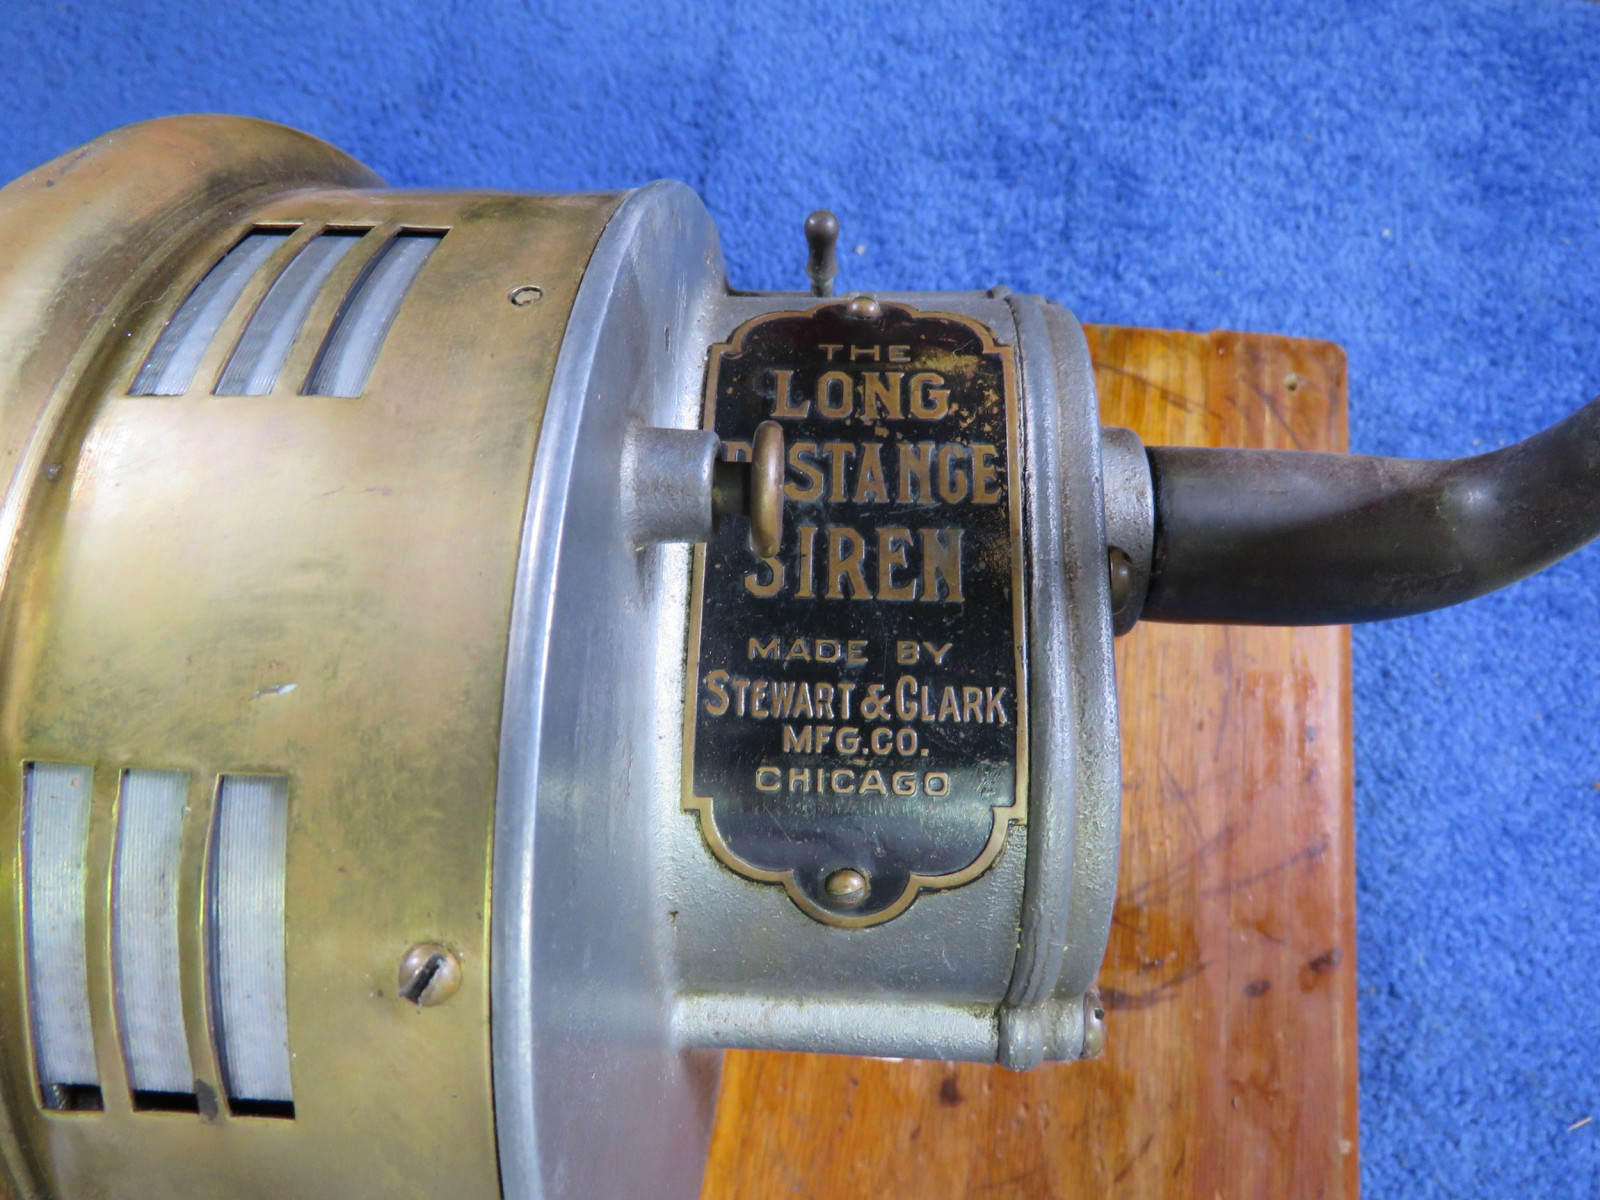 The Long Distance Siren Hand Crank Siren - Image 3